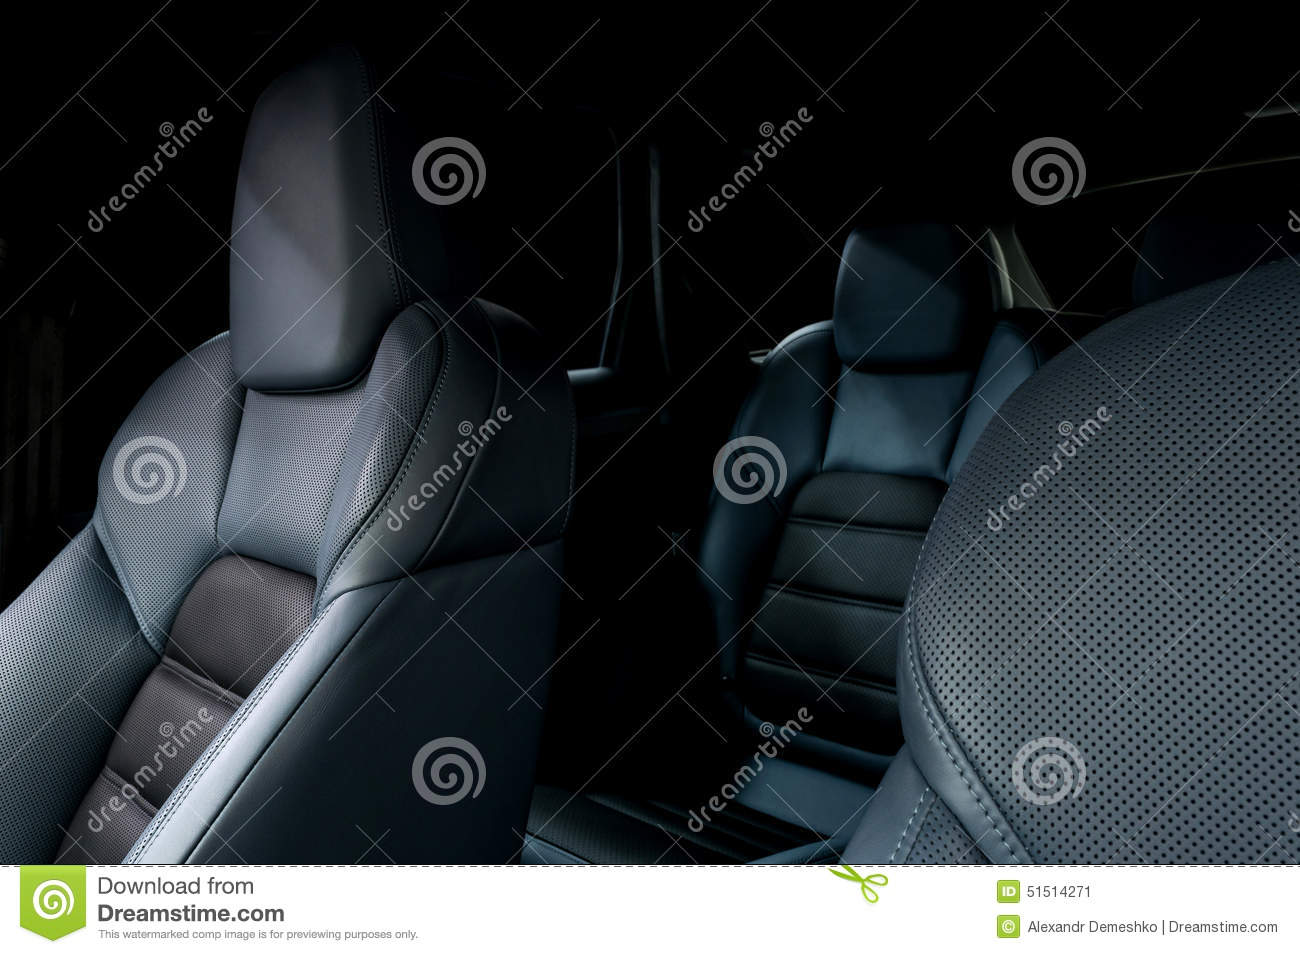 leather car seats royalty free stock image 70302604. Black Bedroom Furniture Sets. Home Design Ideas